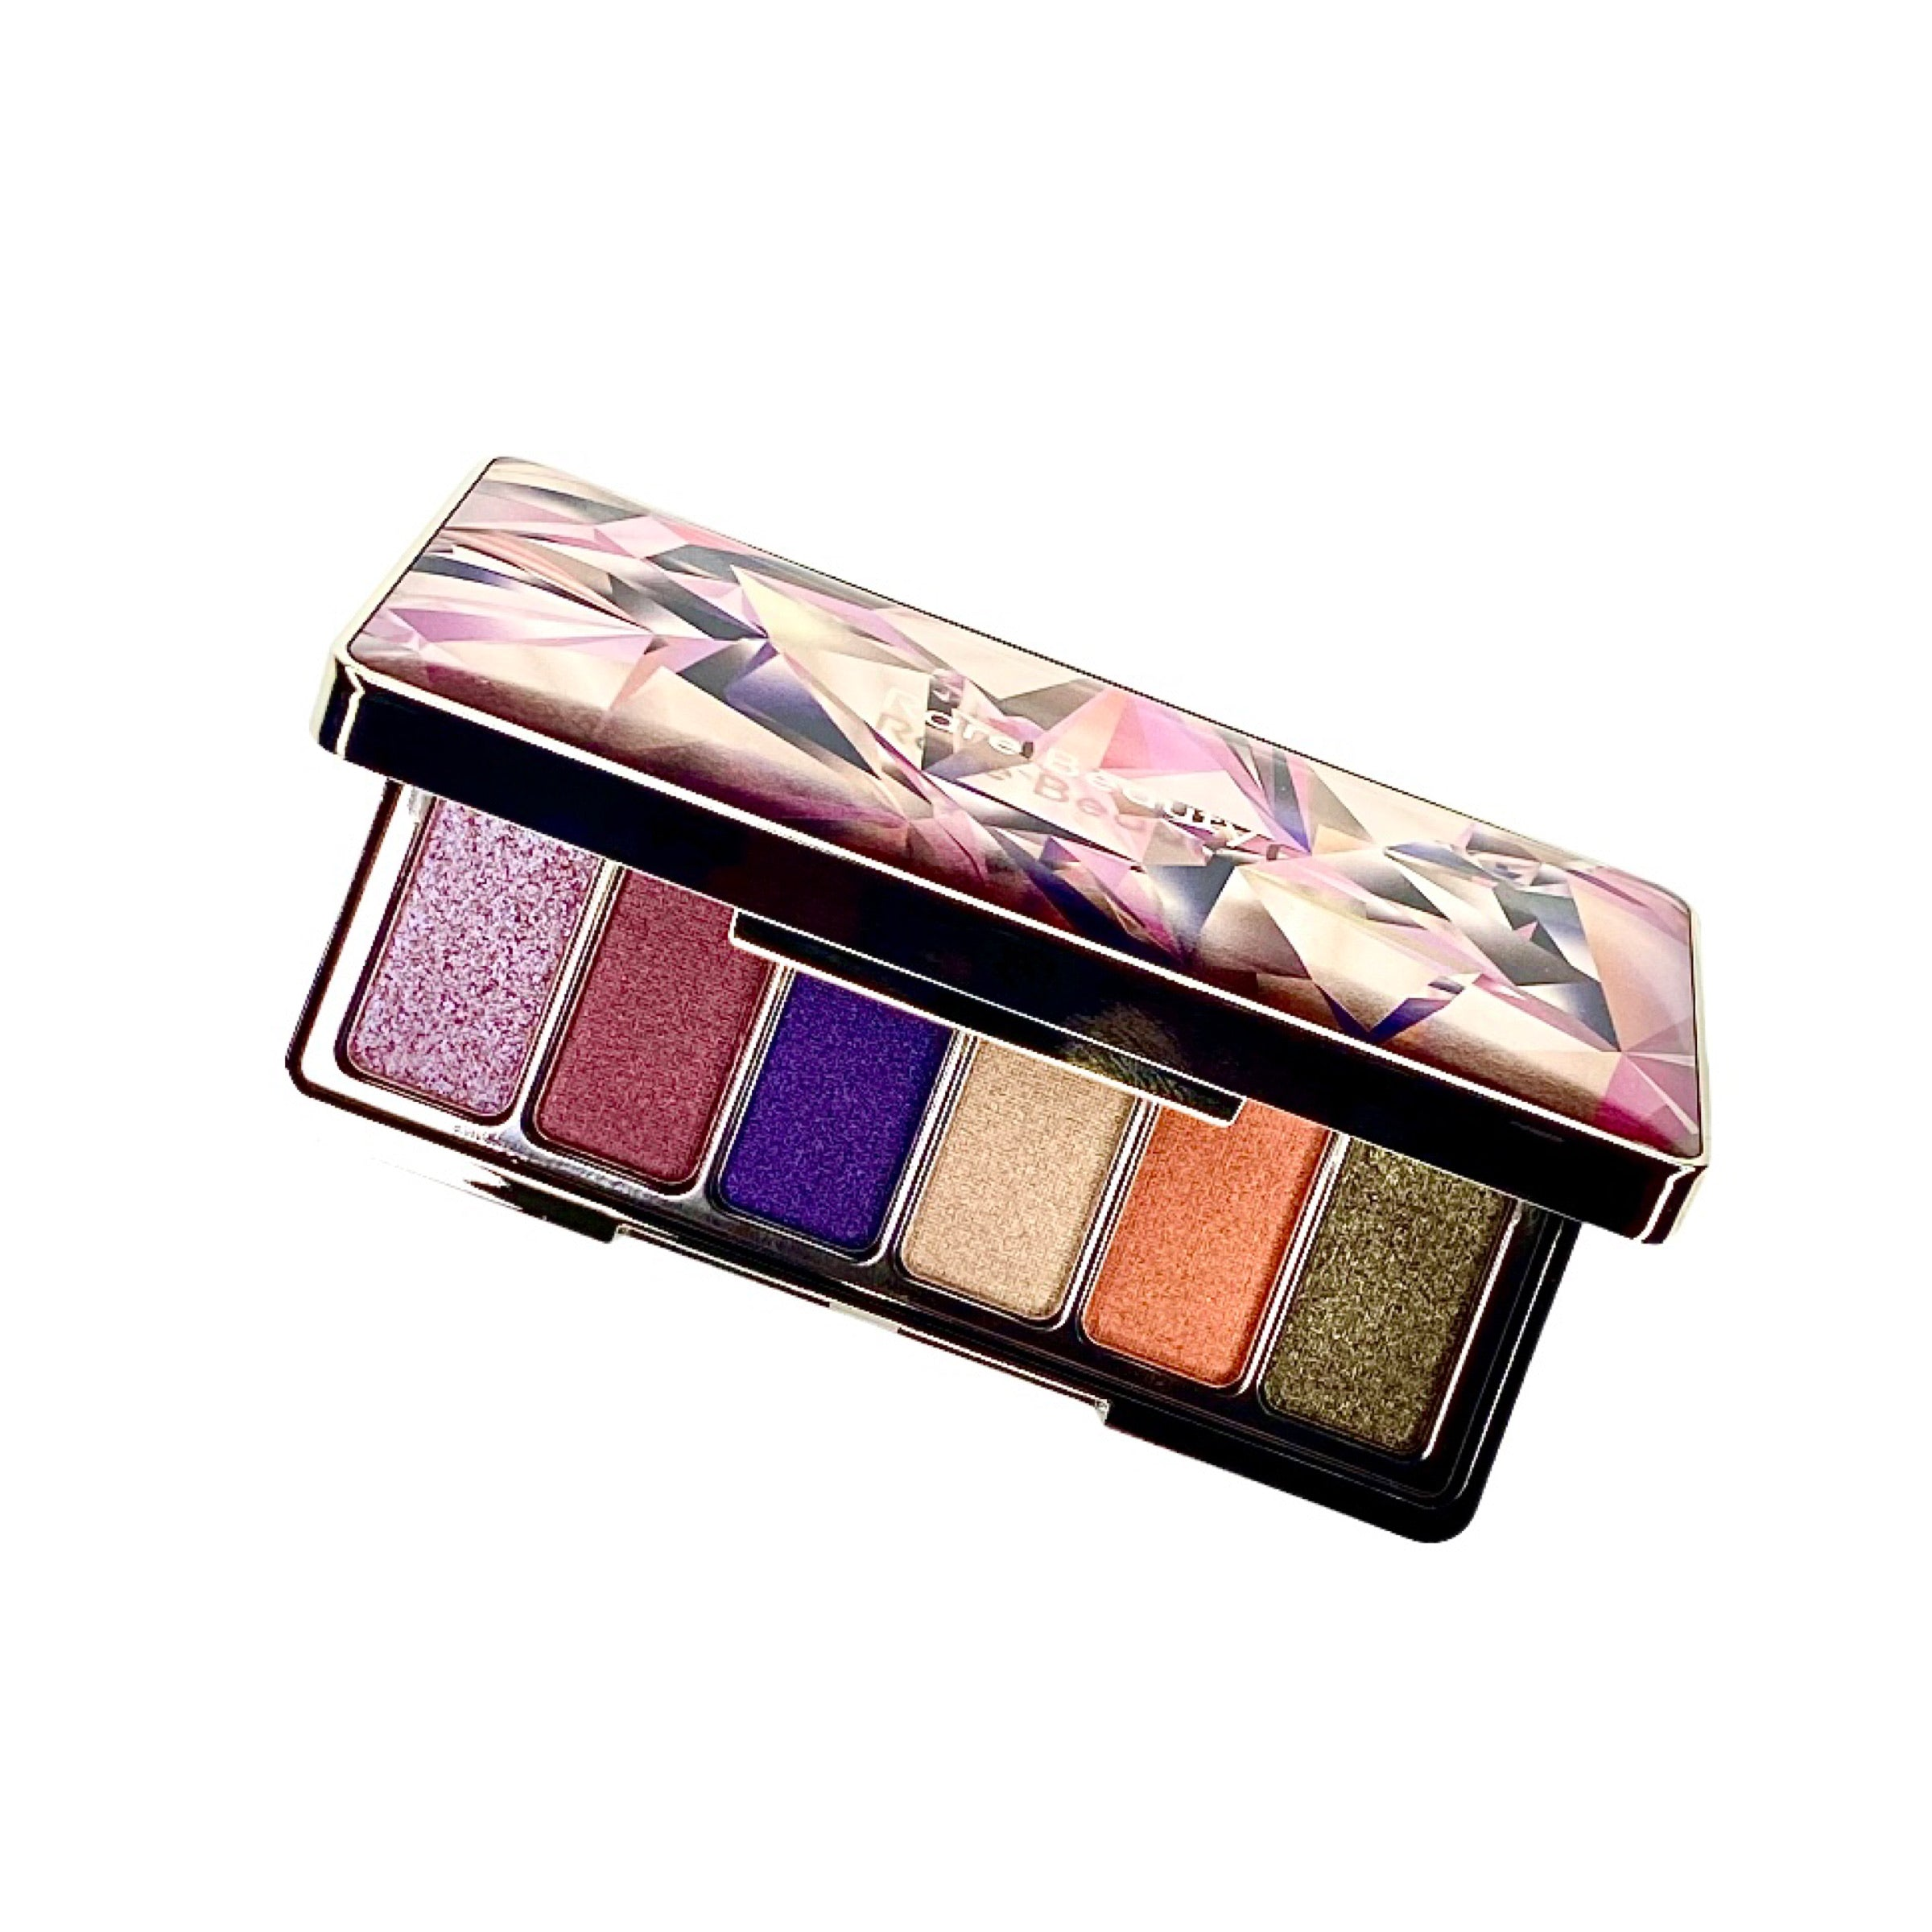 Rare Beauty by Selena Gomez Magnetic Spirit Eyeshadow Palette - Limited Edition